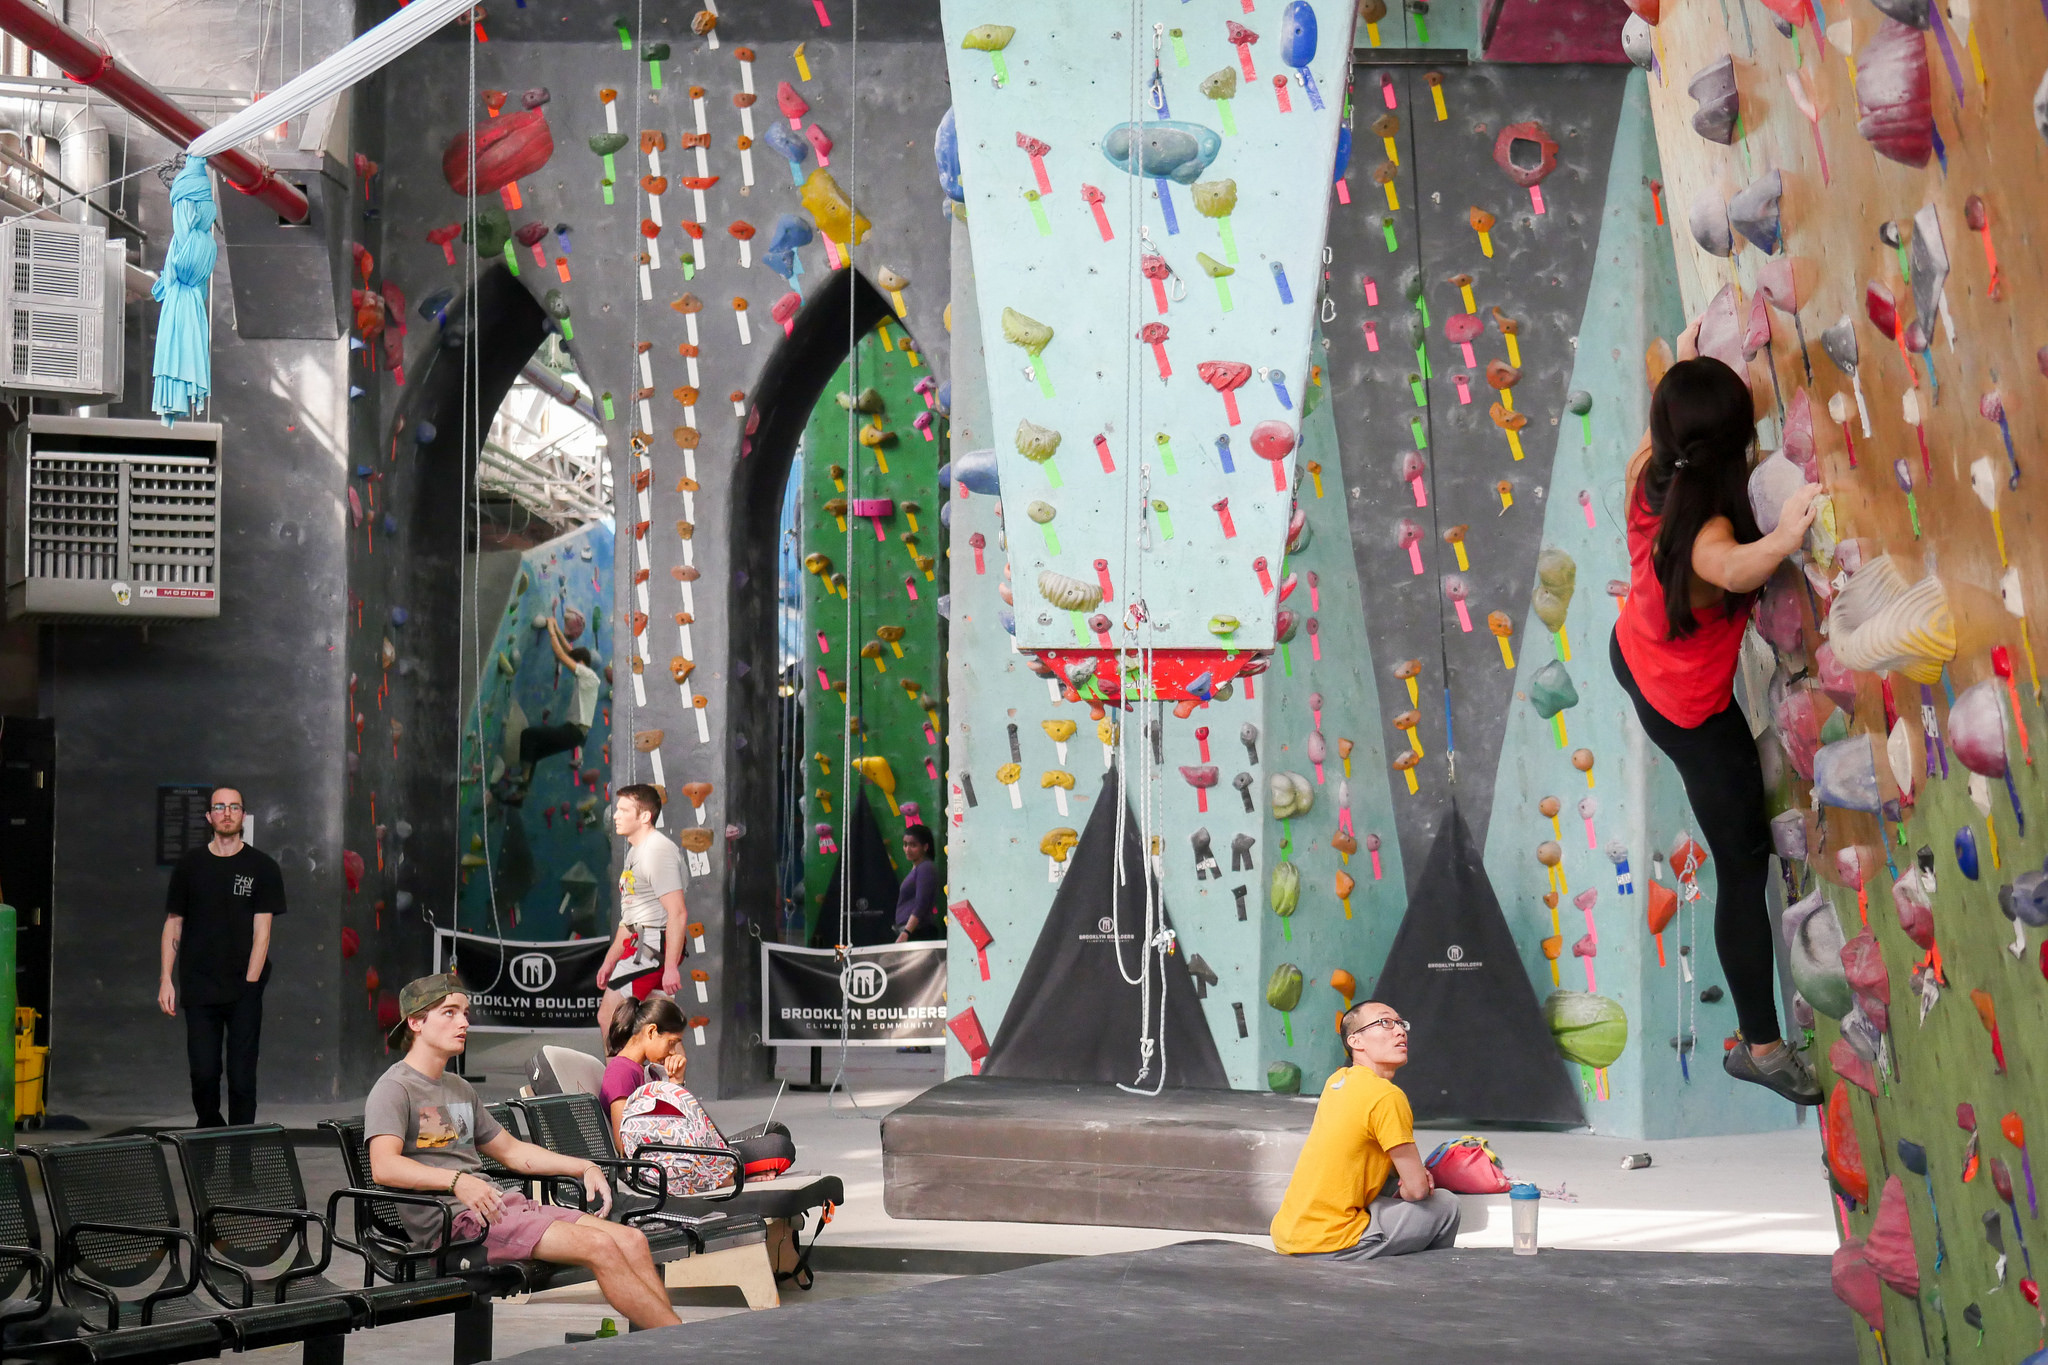 Make the climb at Brooklyn Boulders